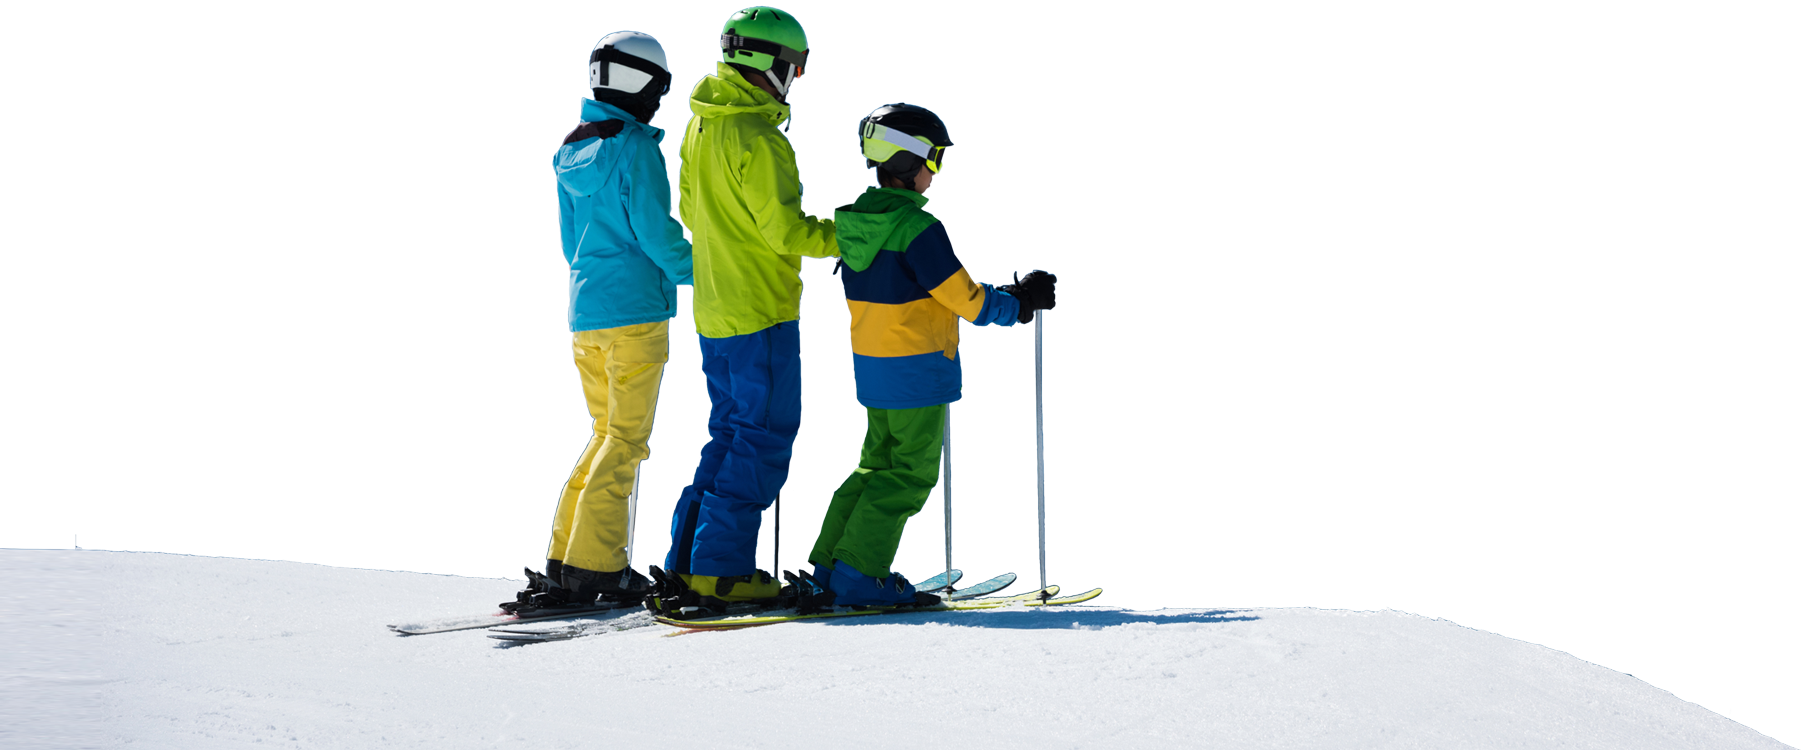 Three kids dressed in brightly colored ski wear stand on their skis while taking in the view